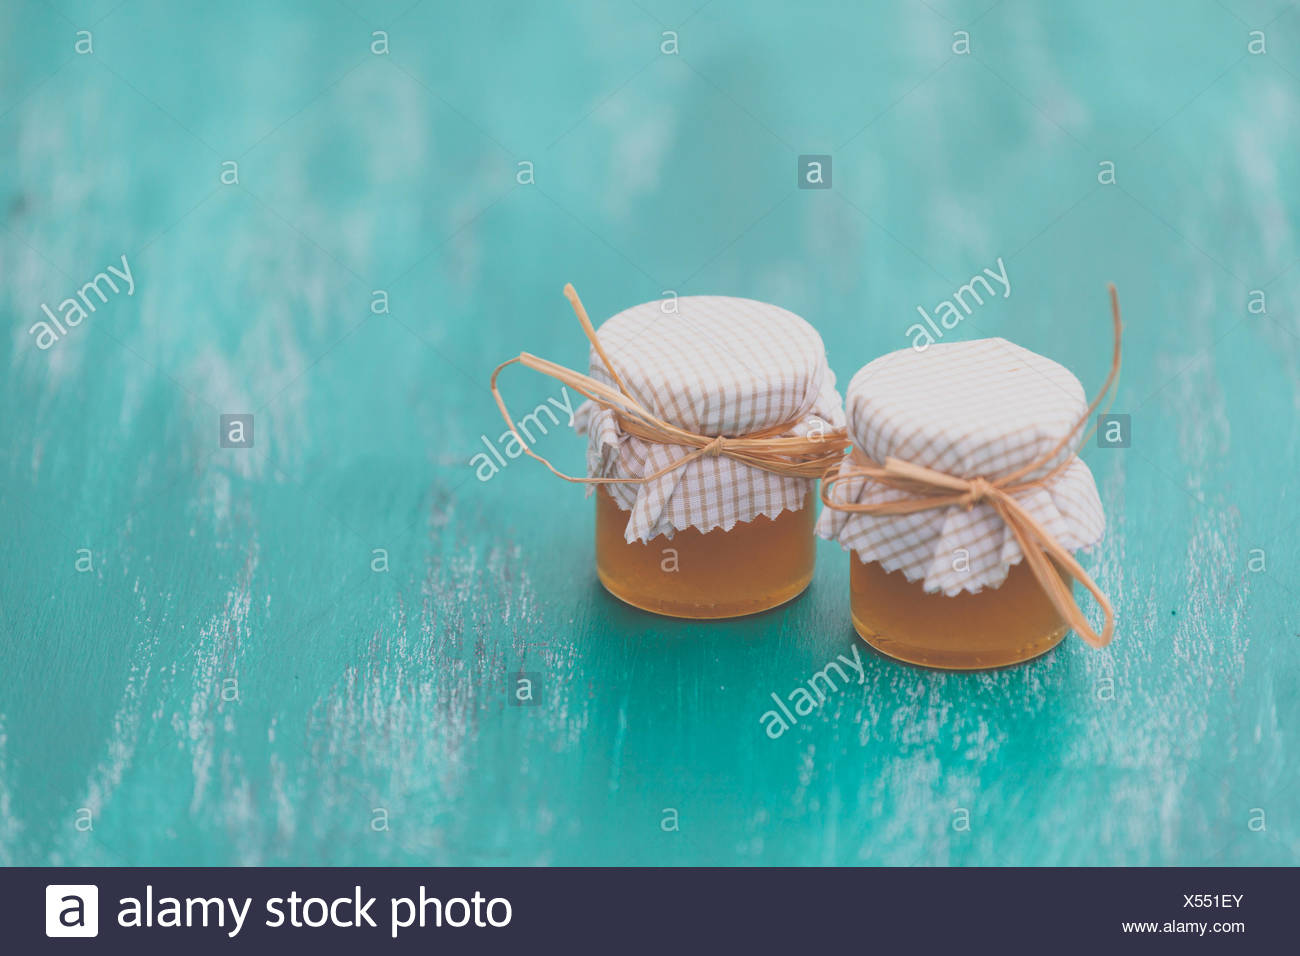 Close-Up Of Honey Jars Covered With Fabric On Table - Stock Image